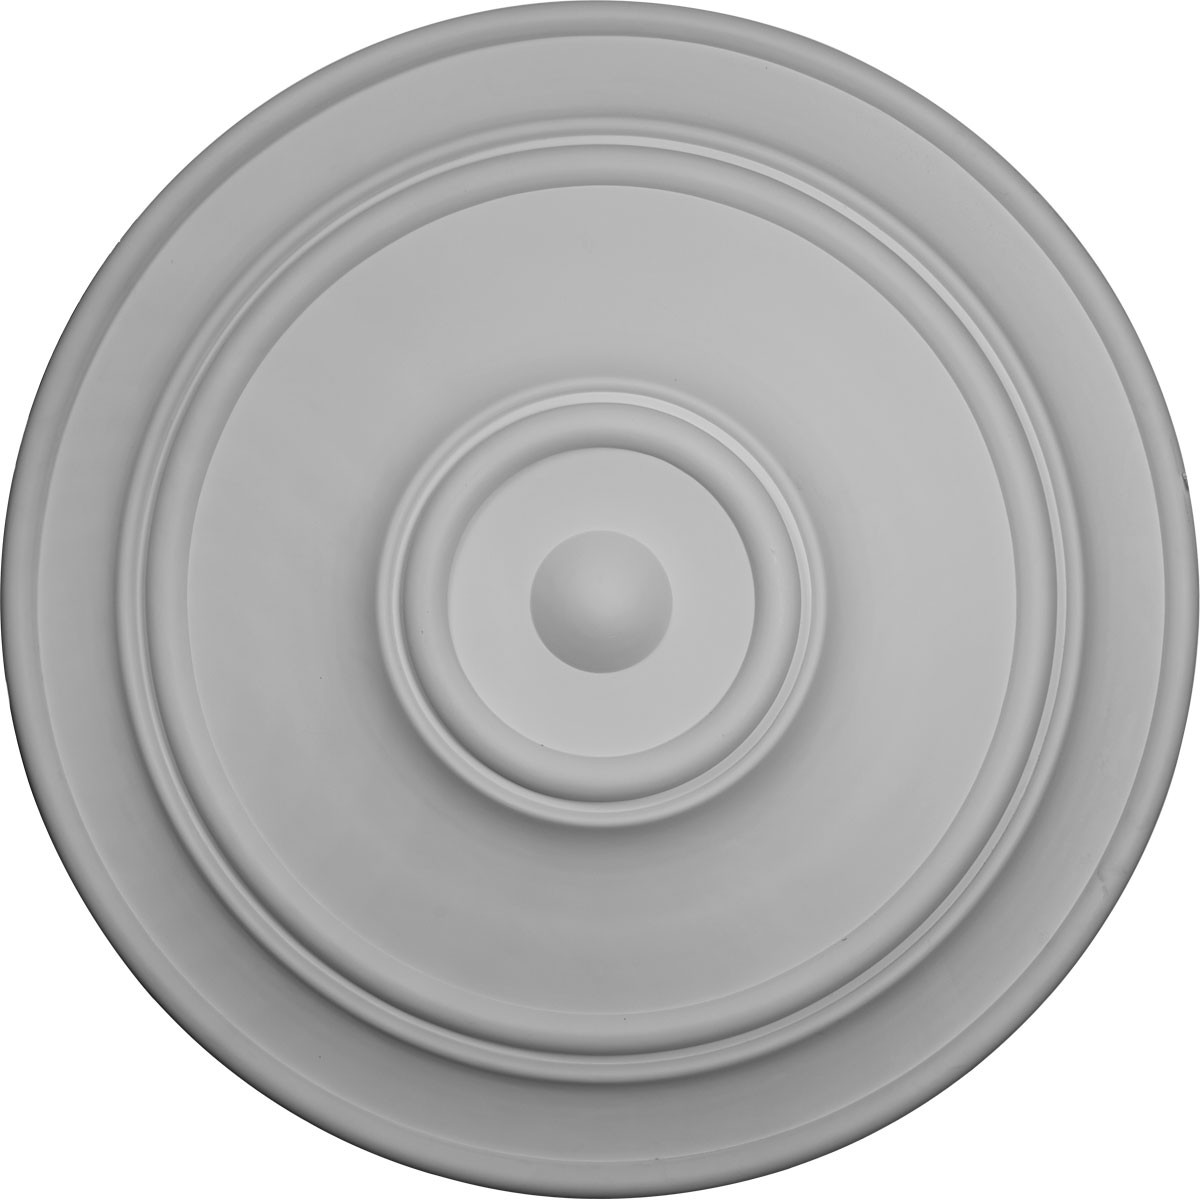 """EM-CM54TCL - 54""""OD x 4 7/8""""P Large Classic Ceiling Medallion (Fits Canopies up to 13 1/2"""")"""